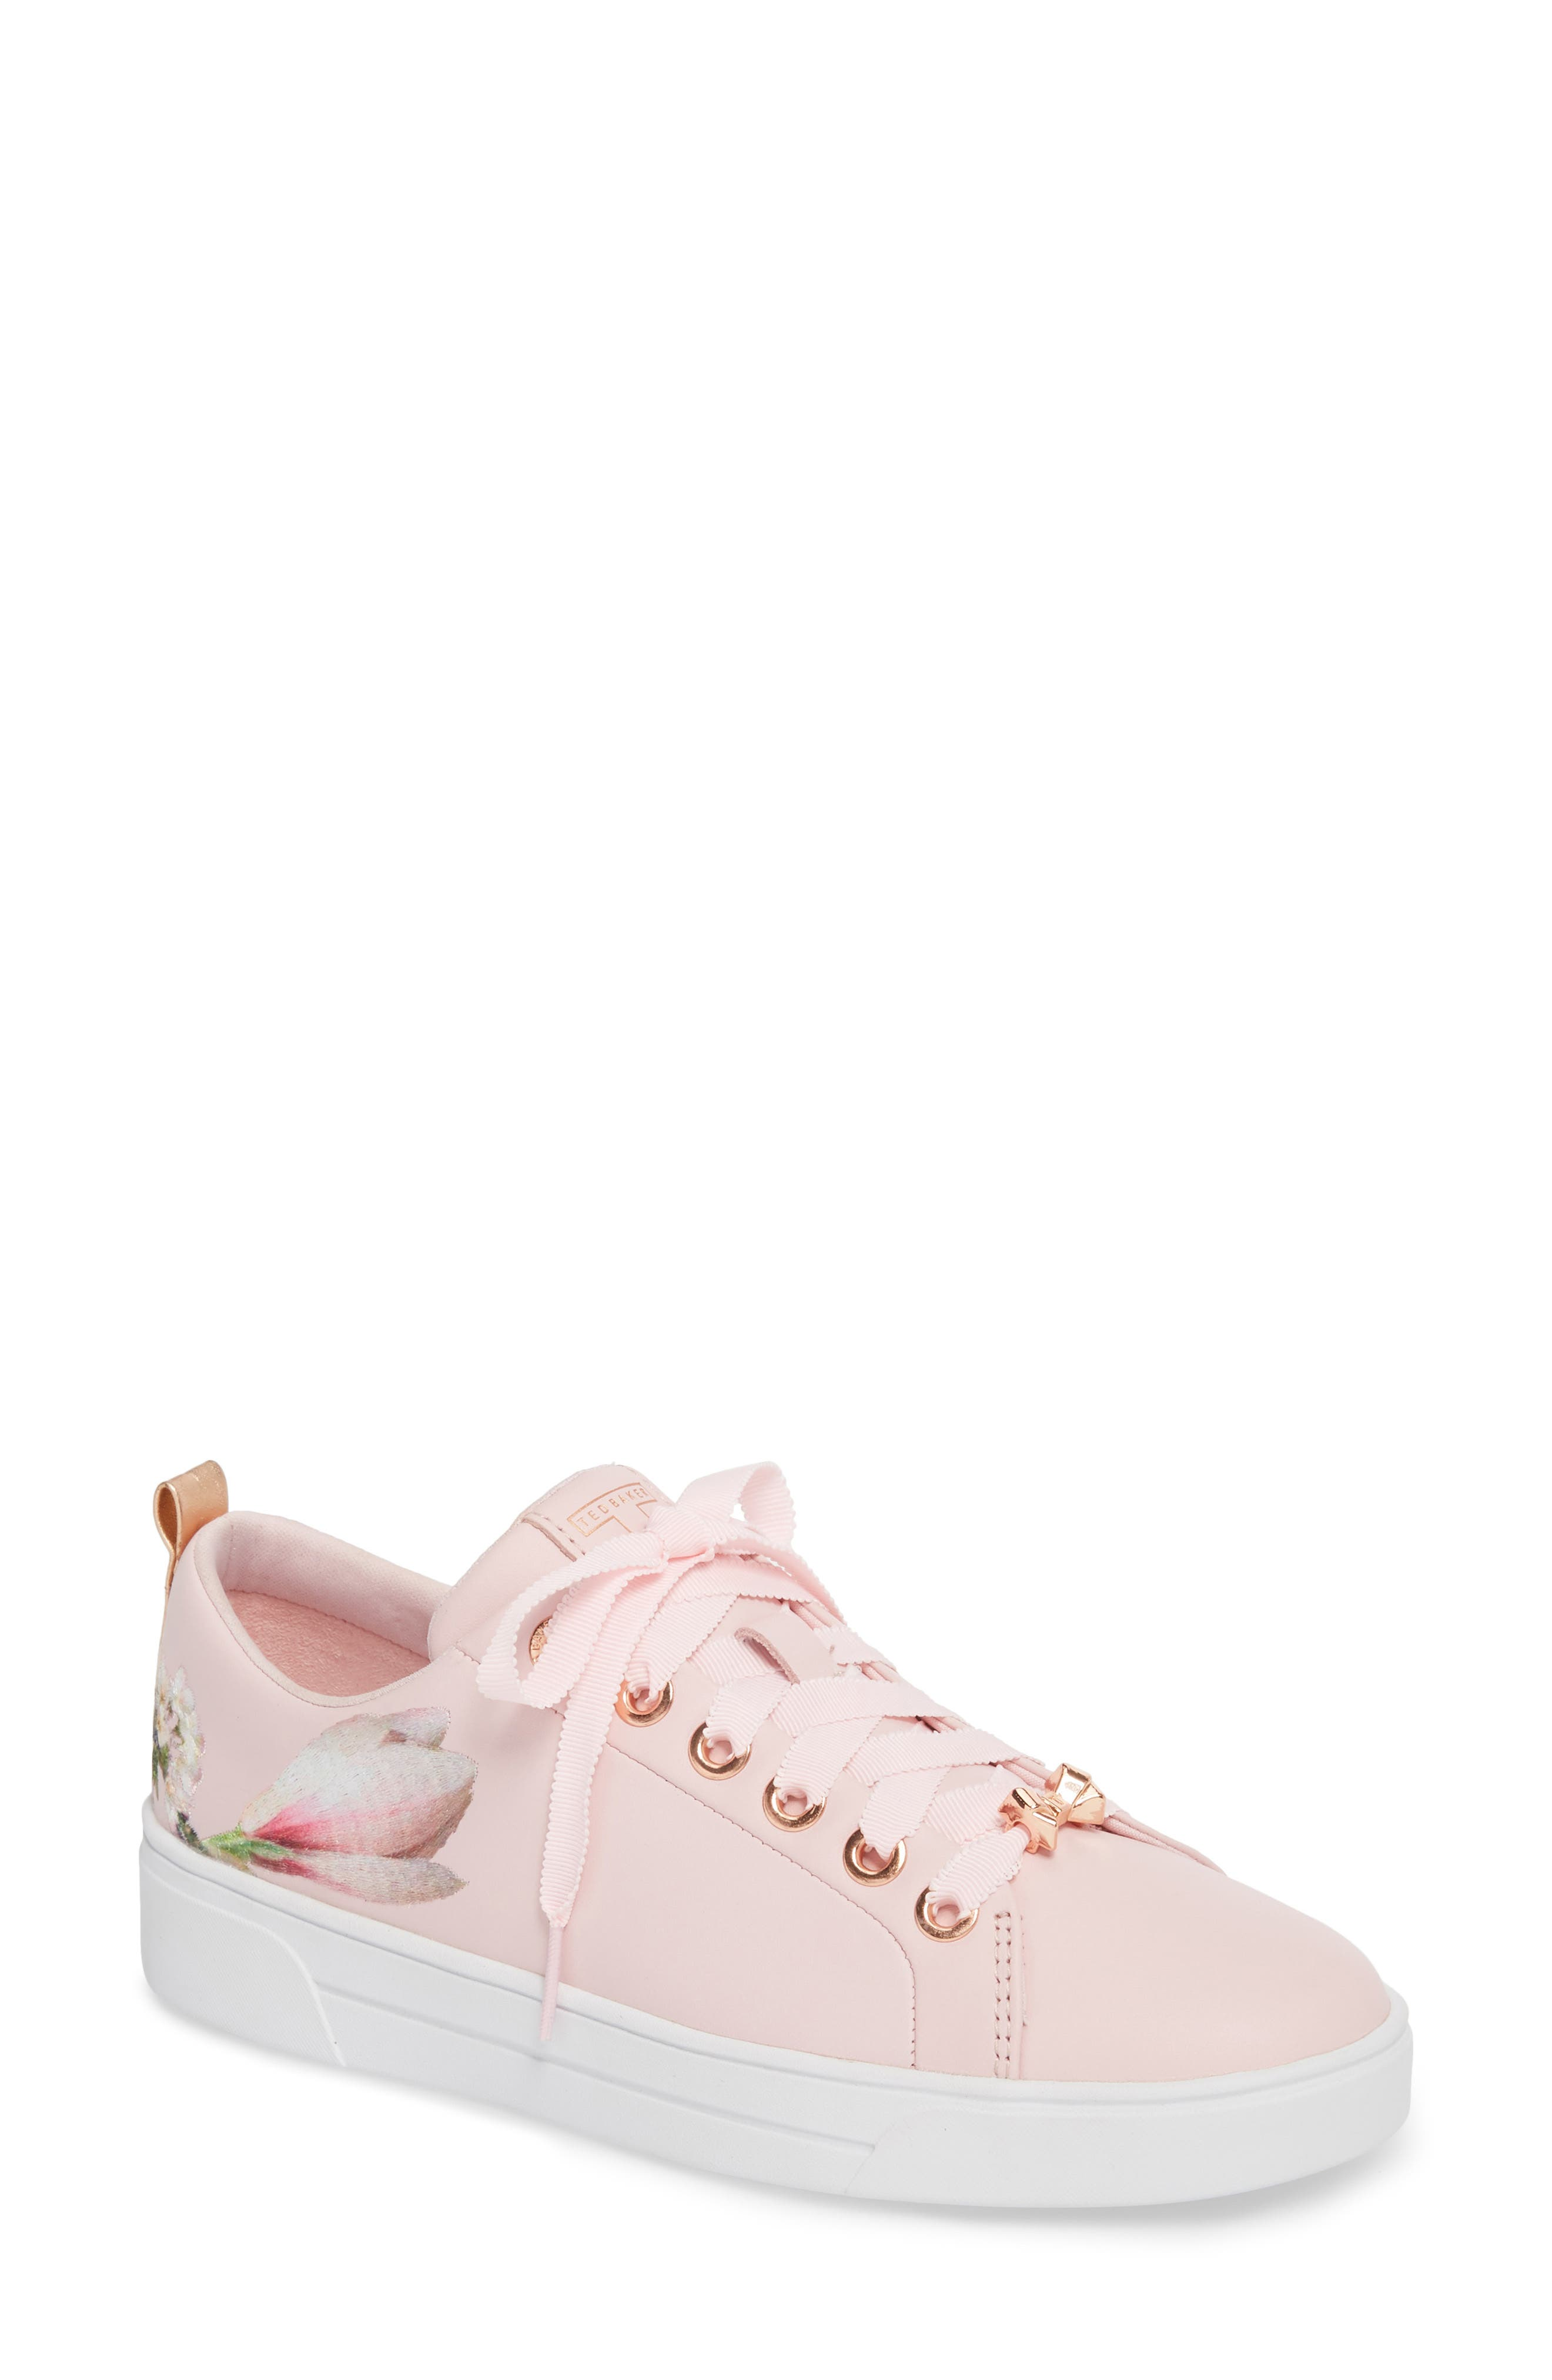 Kelleie Embroidered Sneaker,                         Main,                         color, Mink Pink Leather